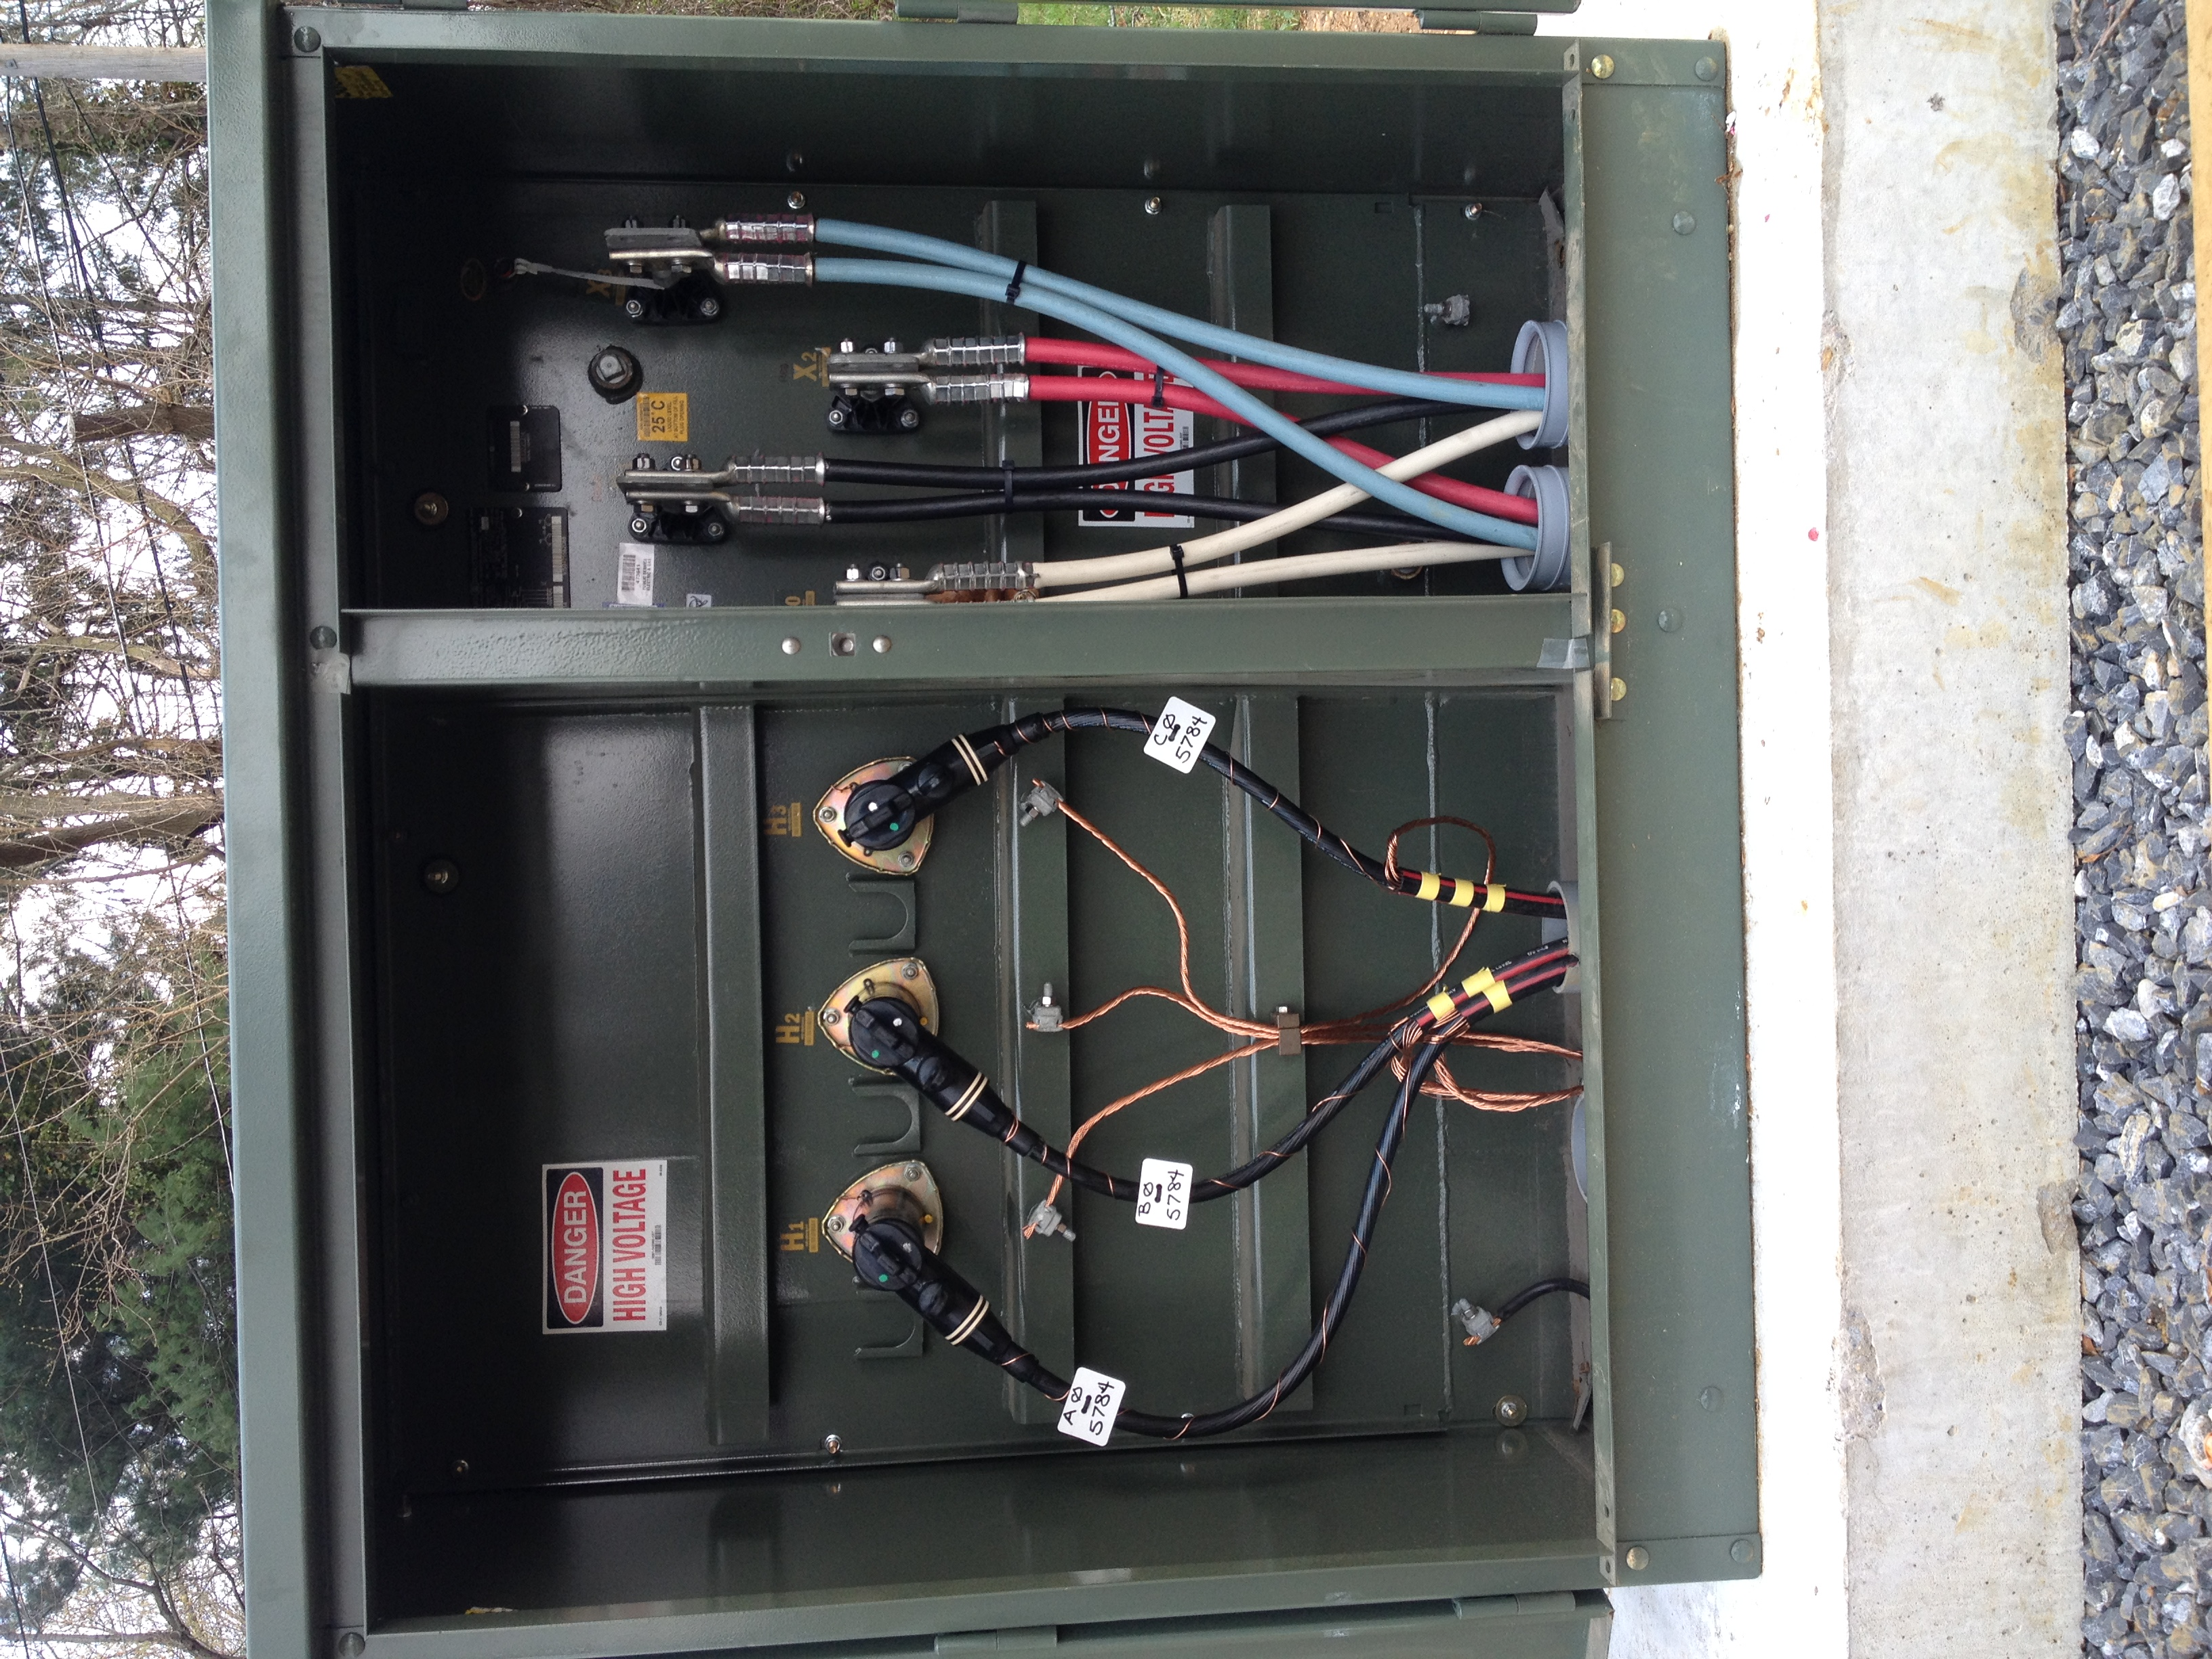 800 amp residential service - Page 2 - Electrician Talk ...